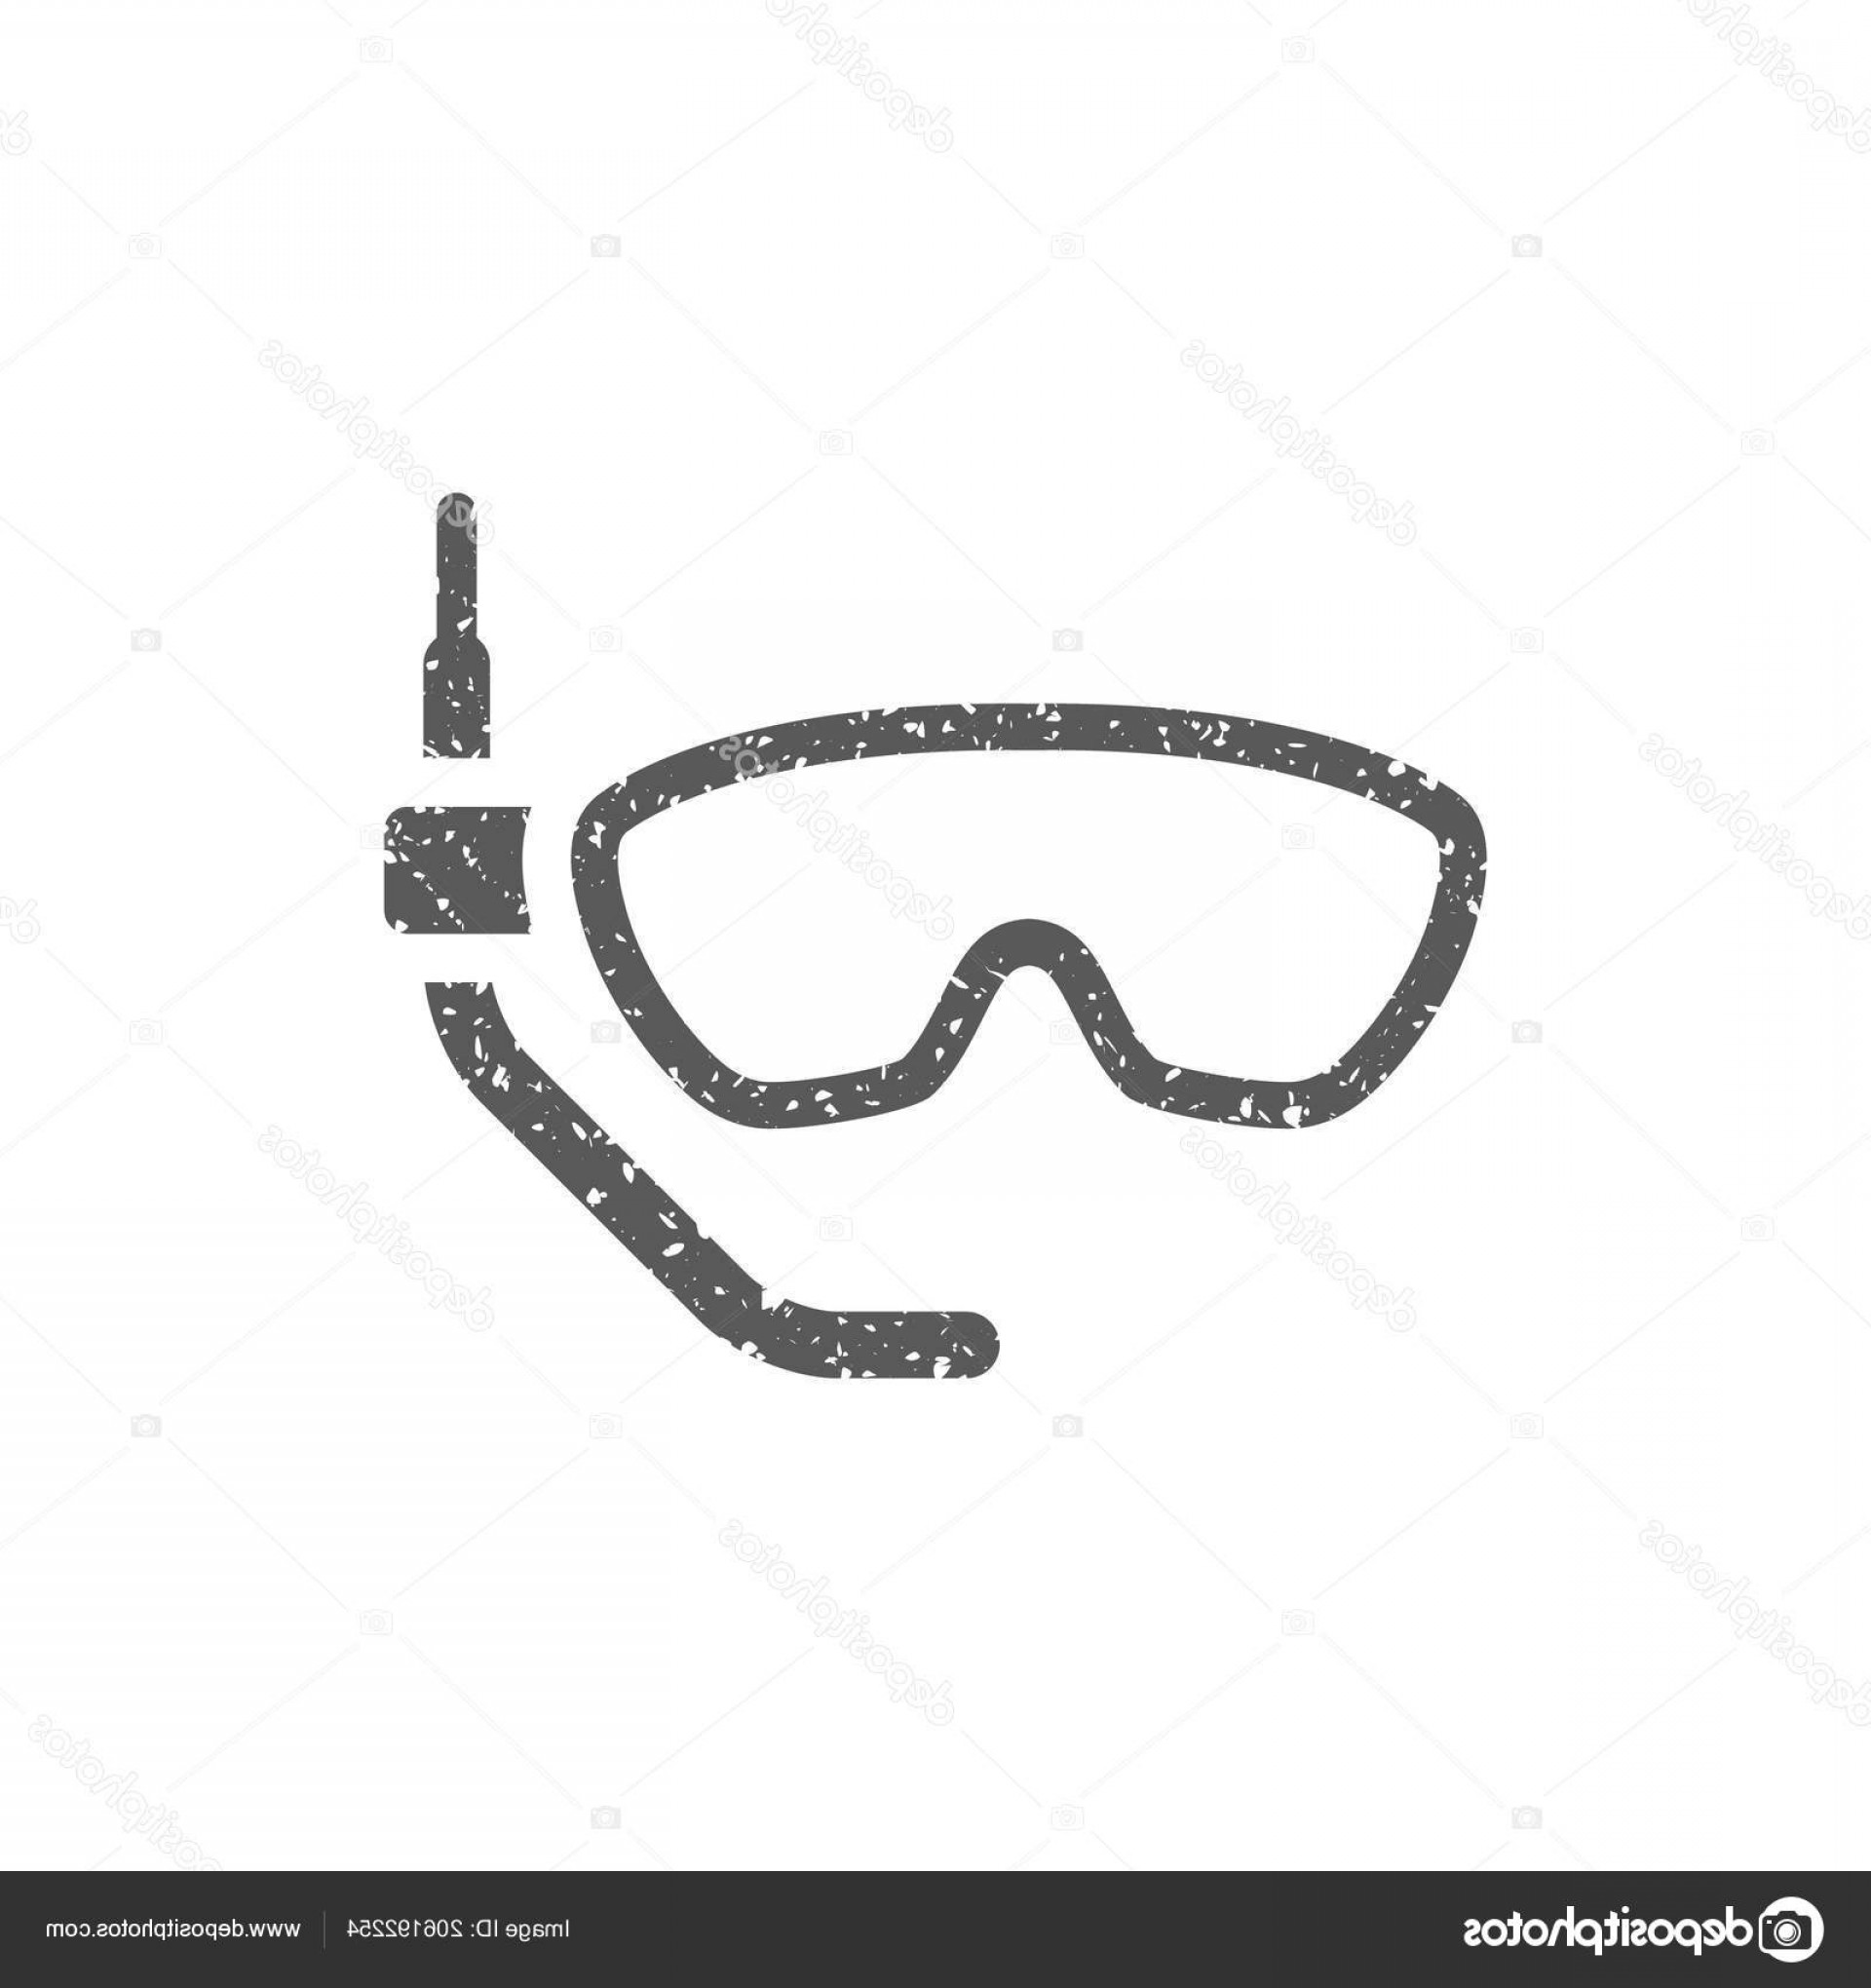 Dive Mask E Vectors: Stock Illustration Snorkel Mask Icon Grunge Texture